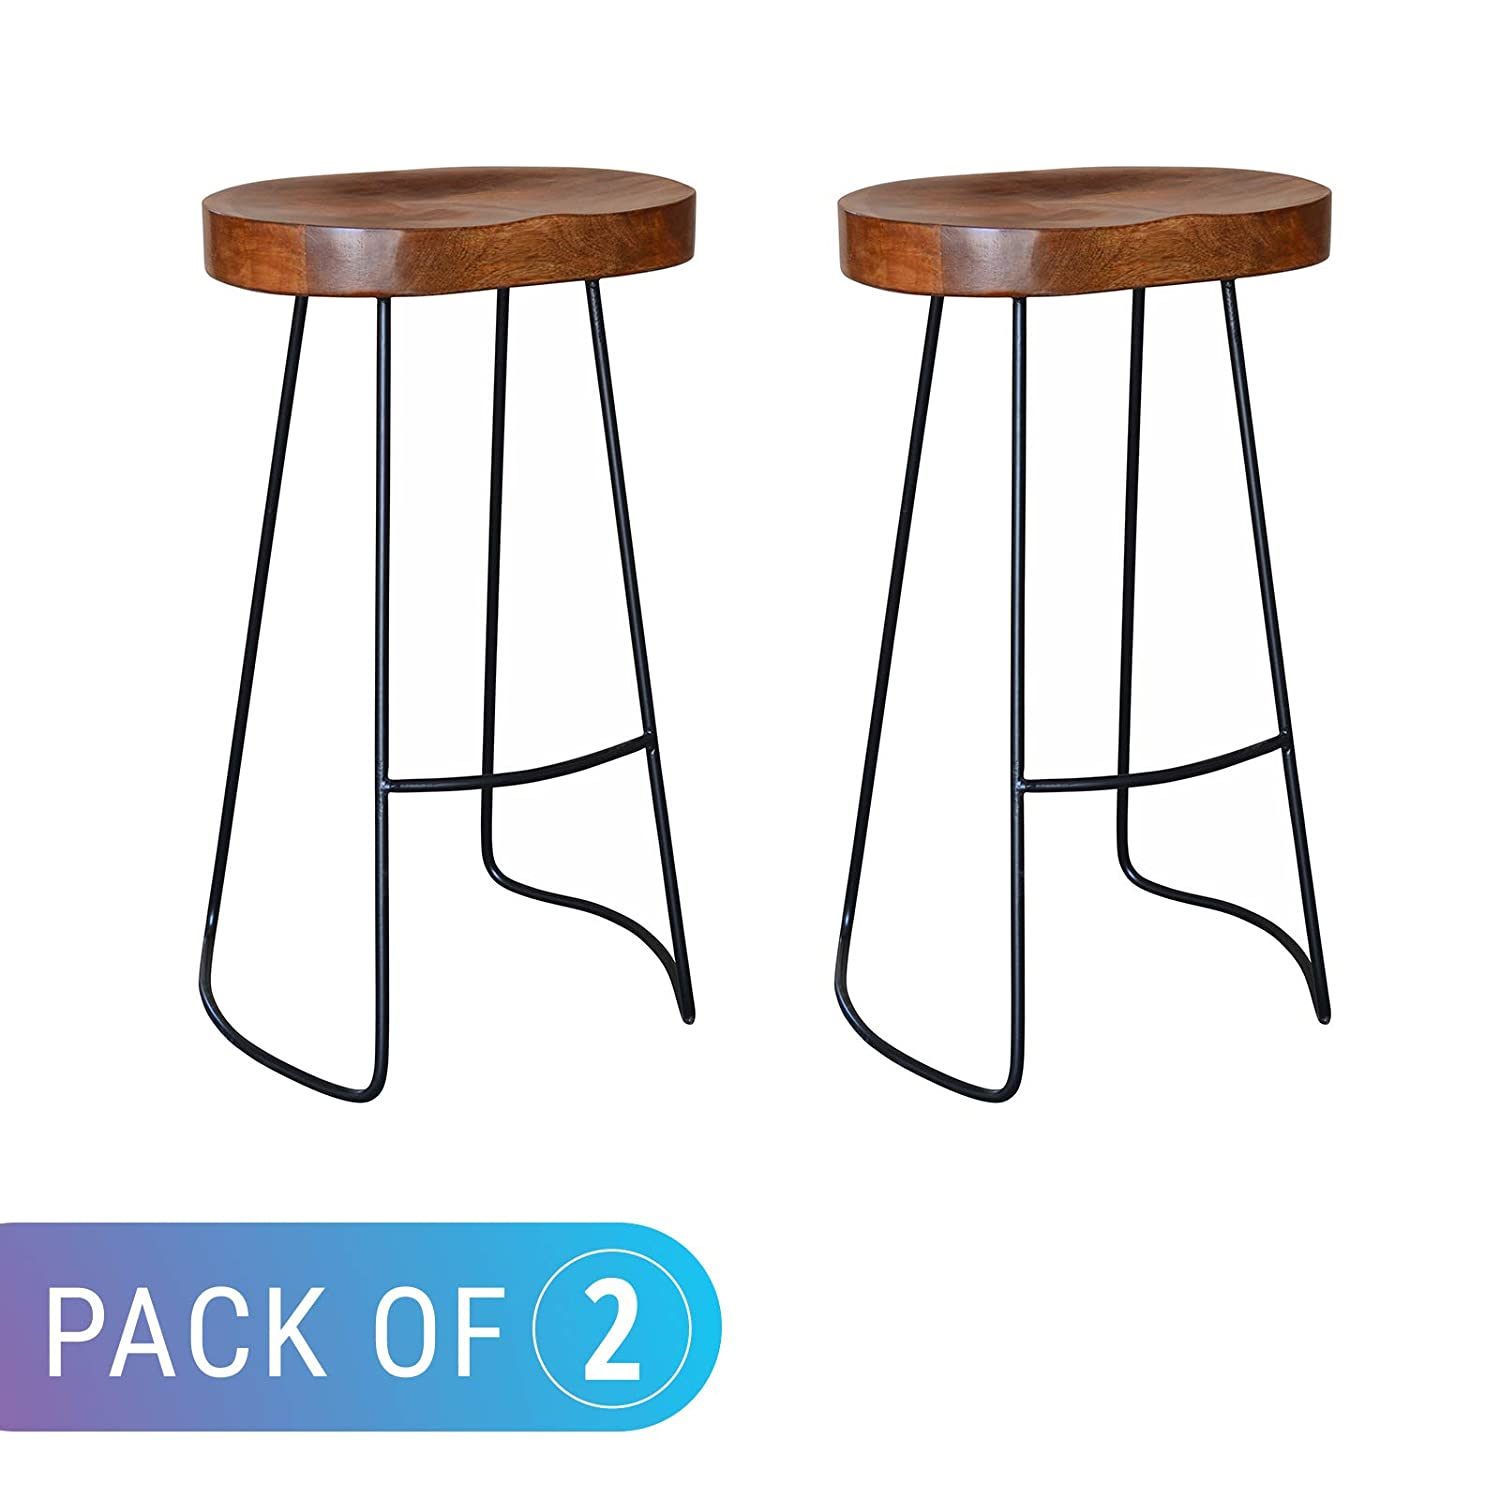 Cool Bp Industries 30070 30 2 Pack Gavin Barstool 17X12X30 Cherry Ibusinesslaw Wood Chair Design Ideas Ibusinesslaworg